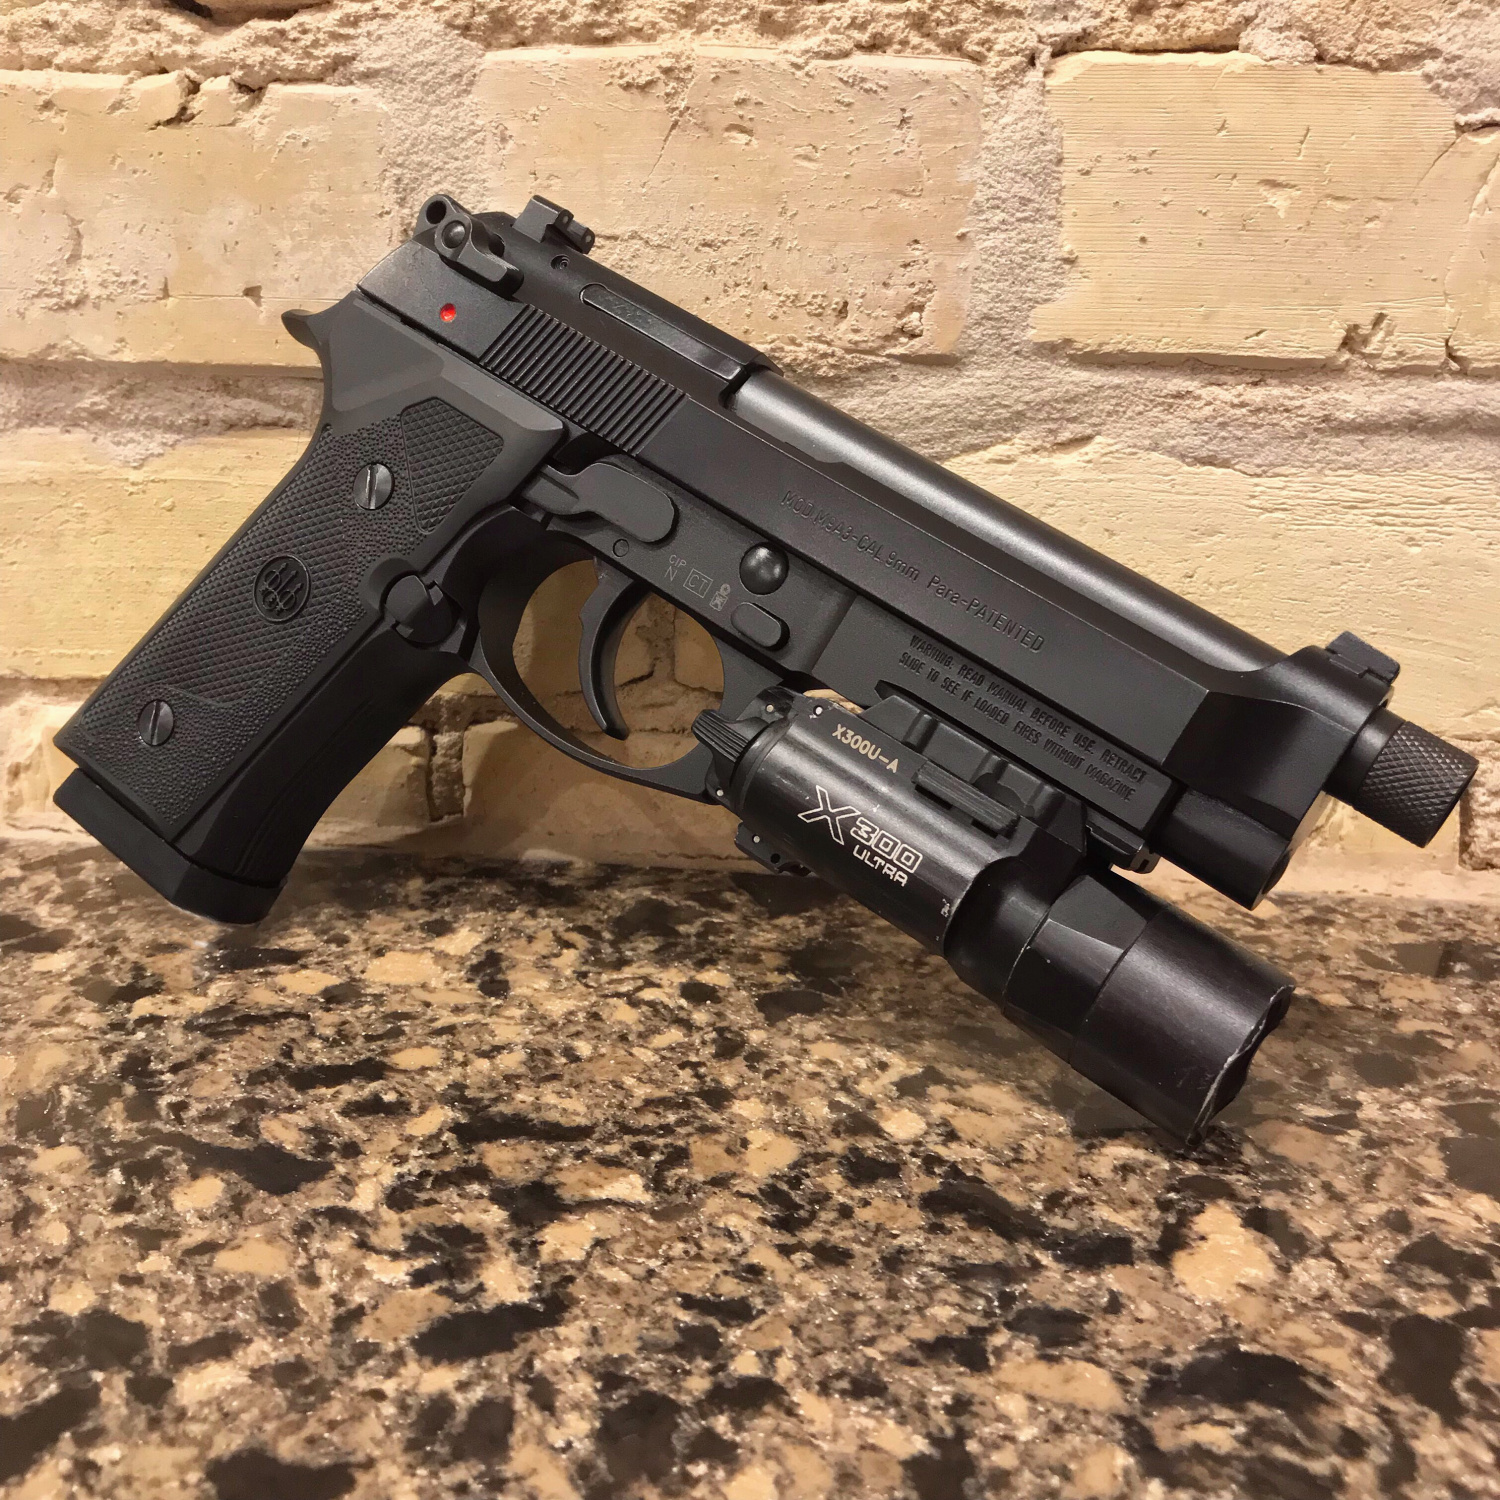 TFB Review: The Beretta M9A3 Pistol -The Firearm Blog